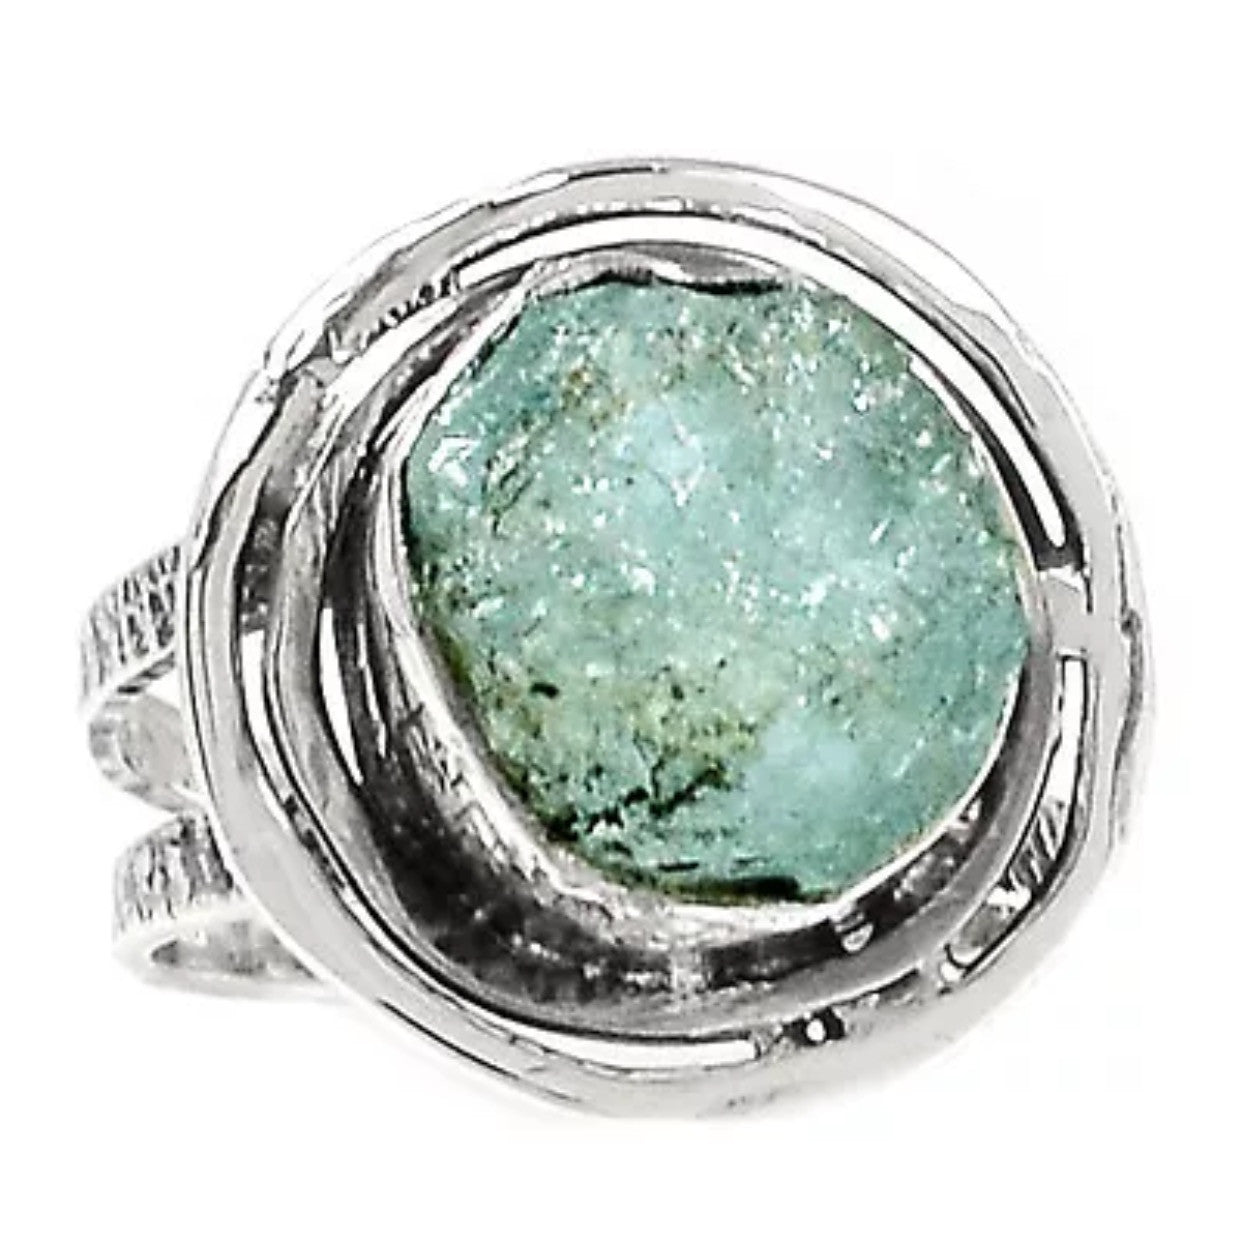 Aquamarine Rough Sterling Silver Nest Ring - Keja Designs Jewelry